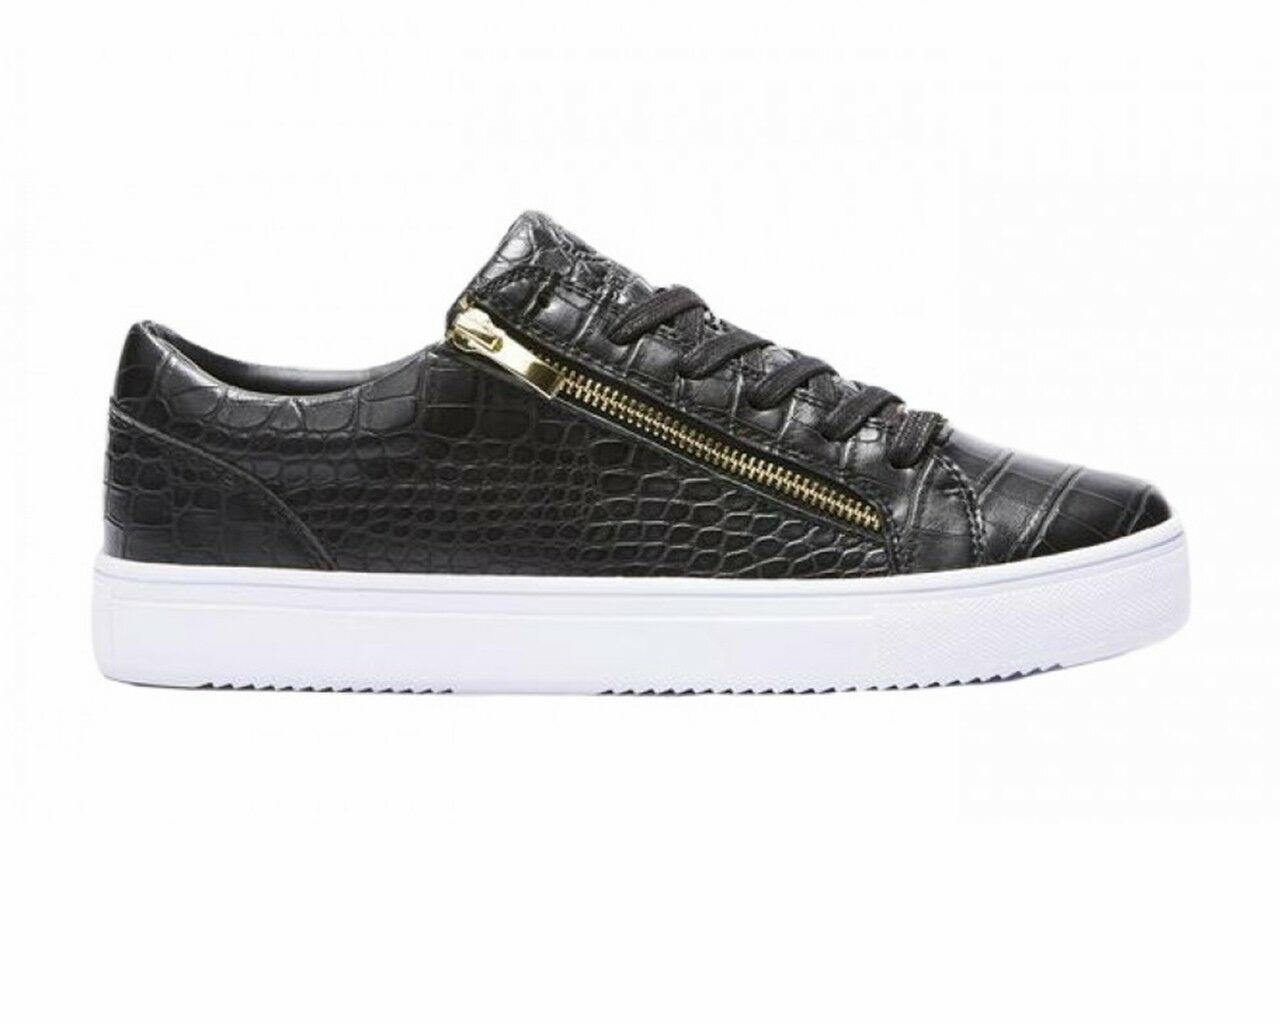 Certified London L7FW0022 BMO Cupsole Mens Trainers Black Shoes